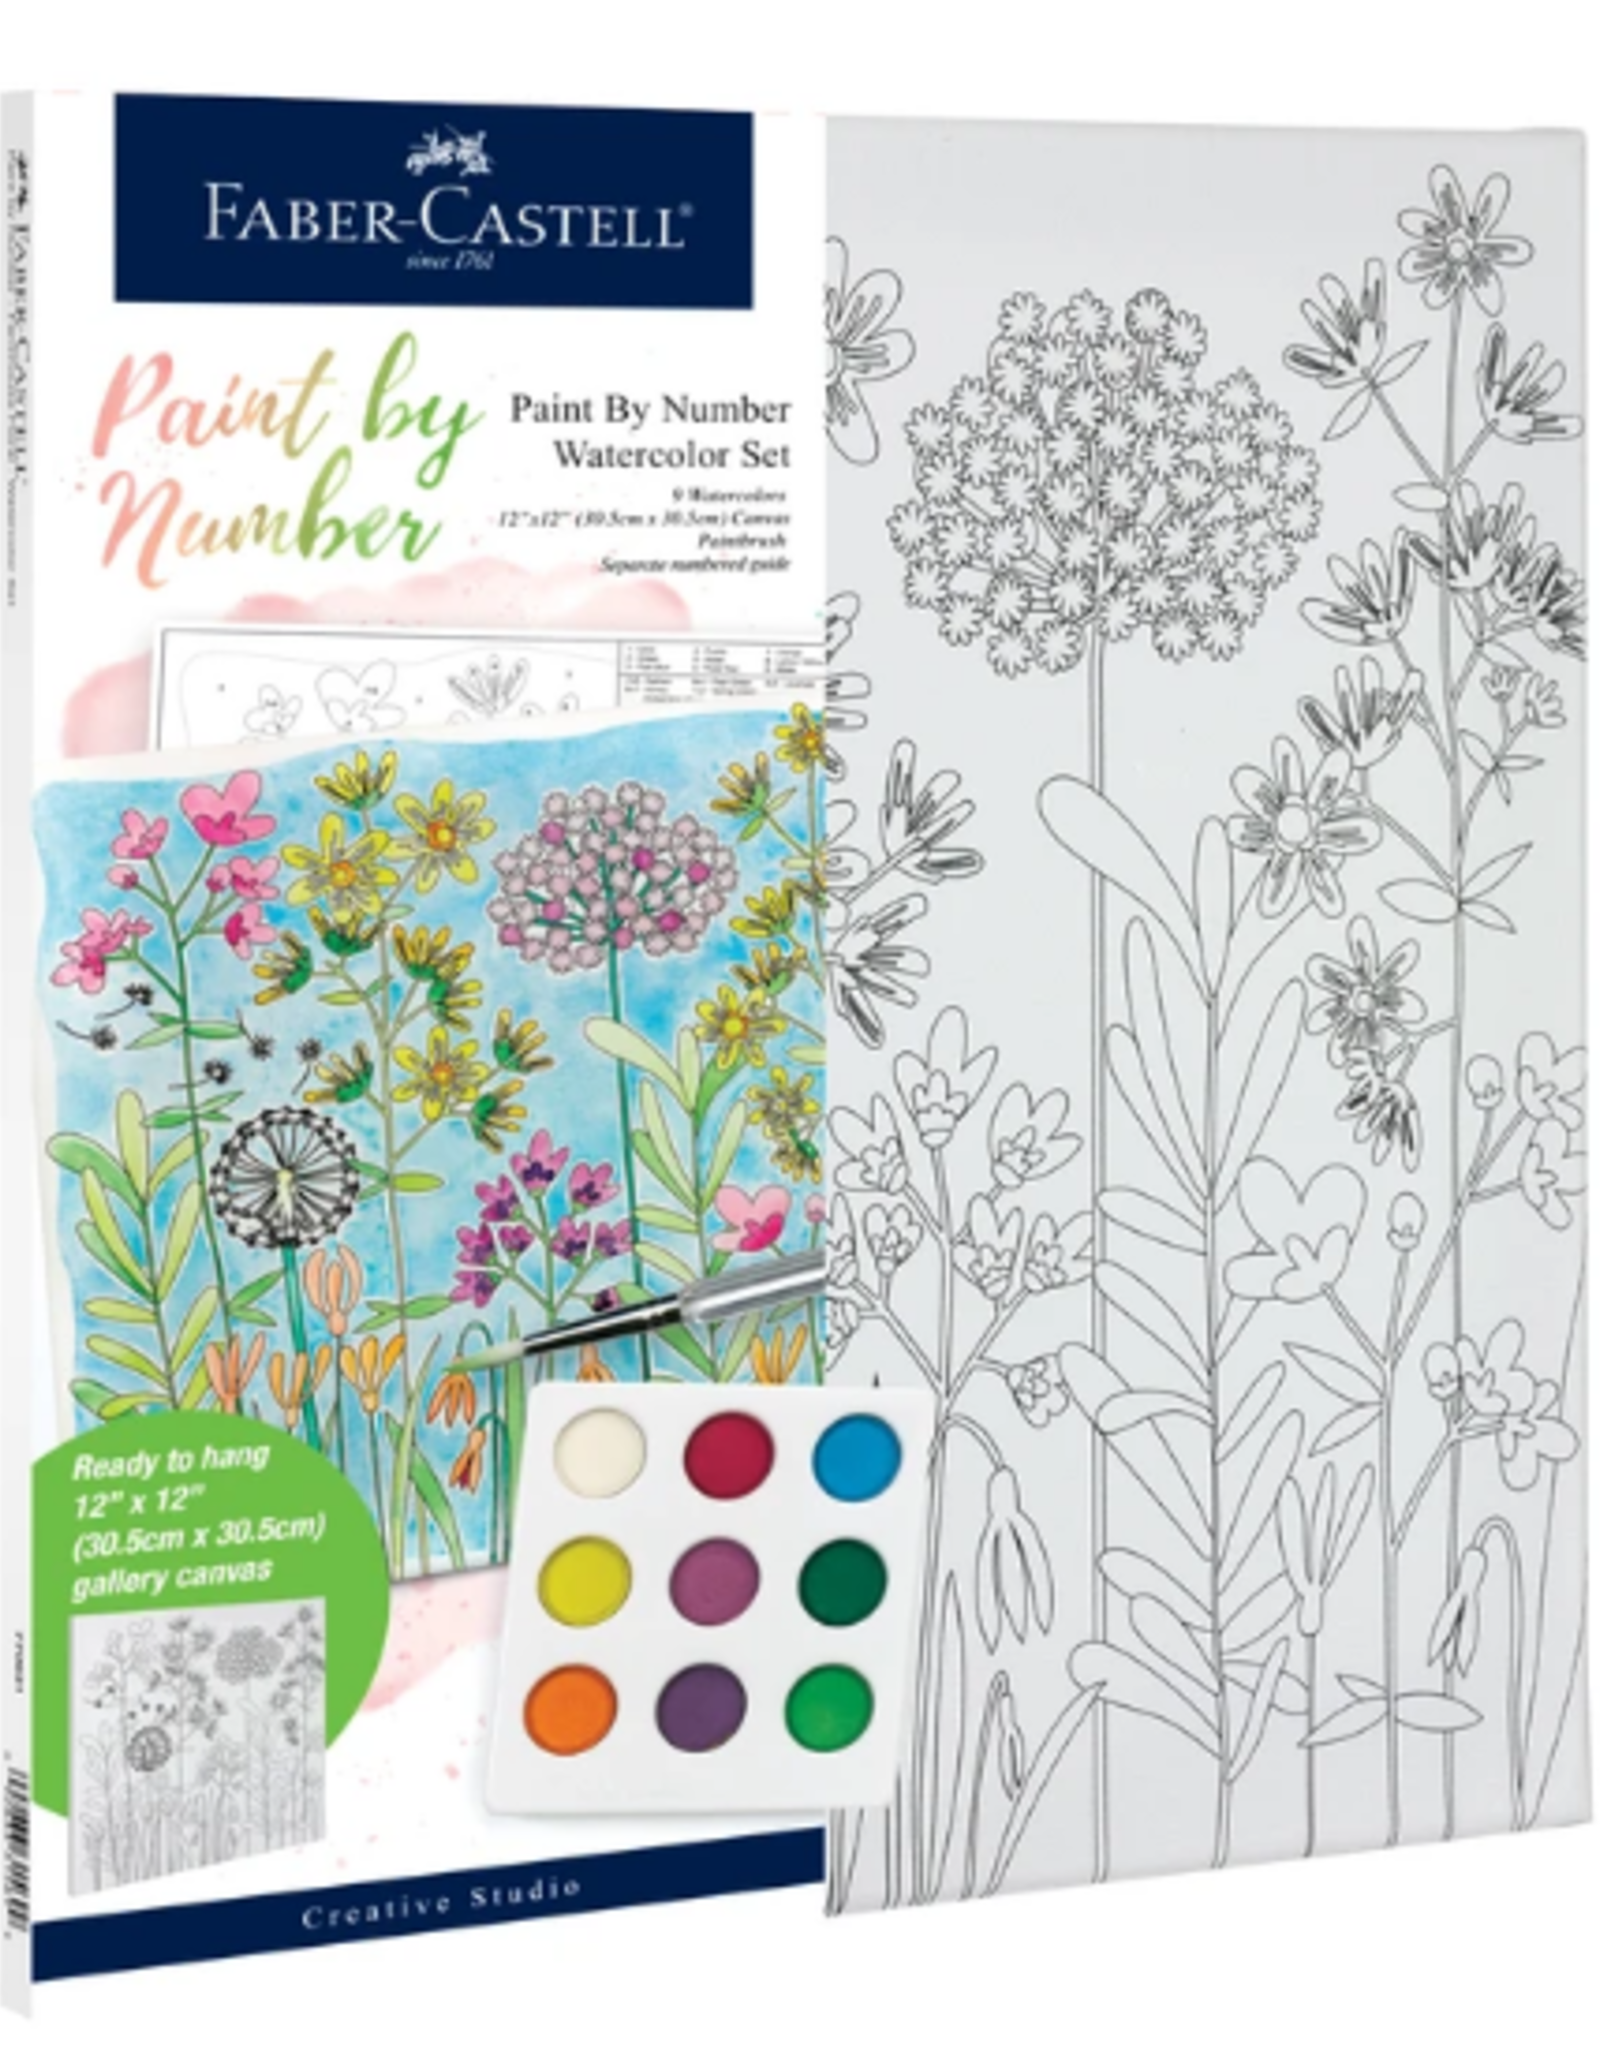 Faber-Castell Watercolor Paint by Number: Farm House